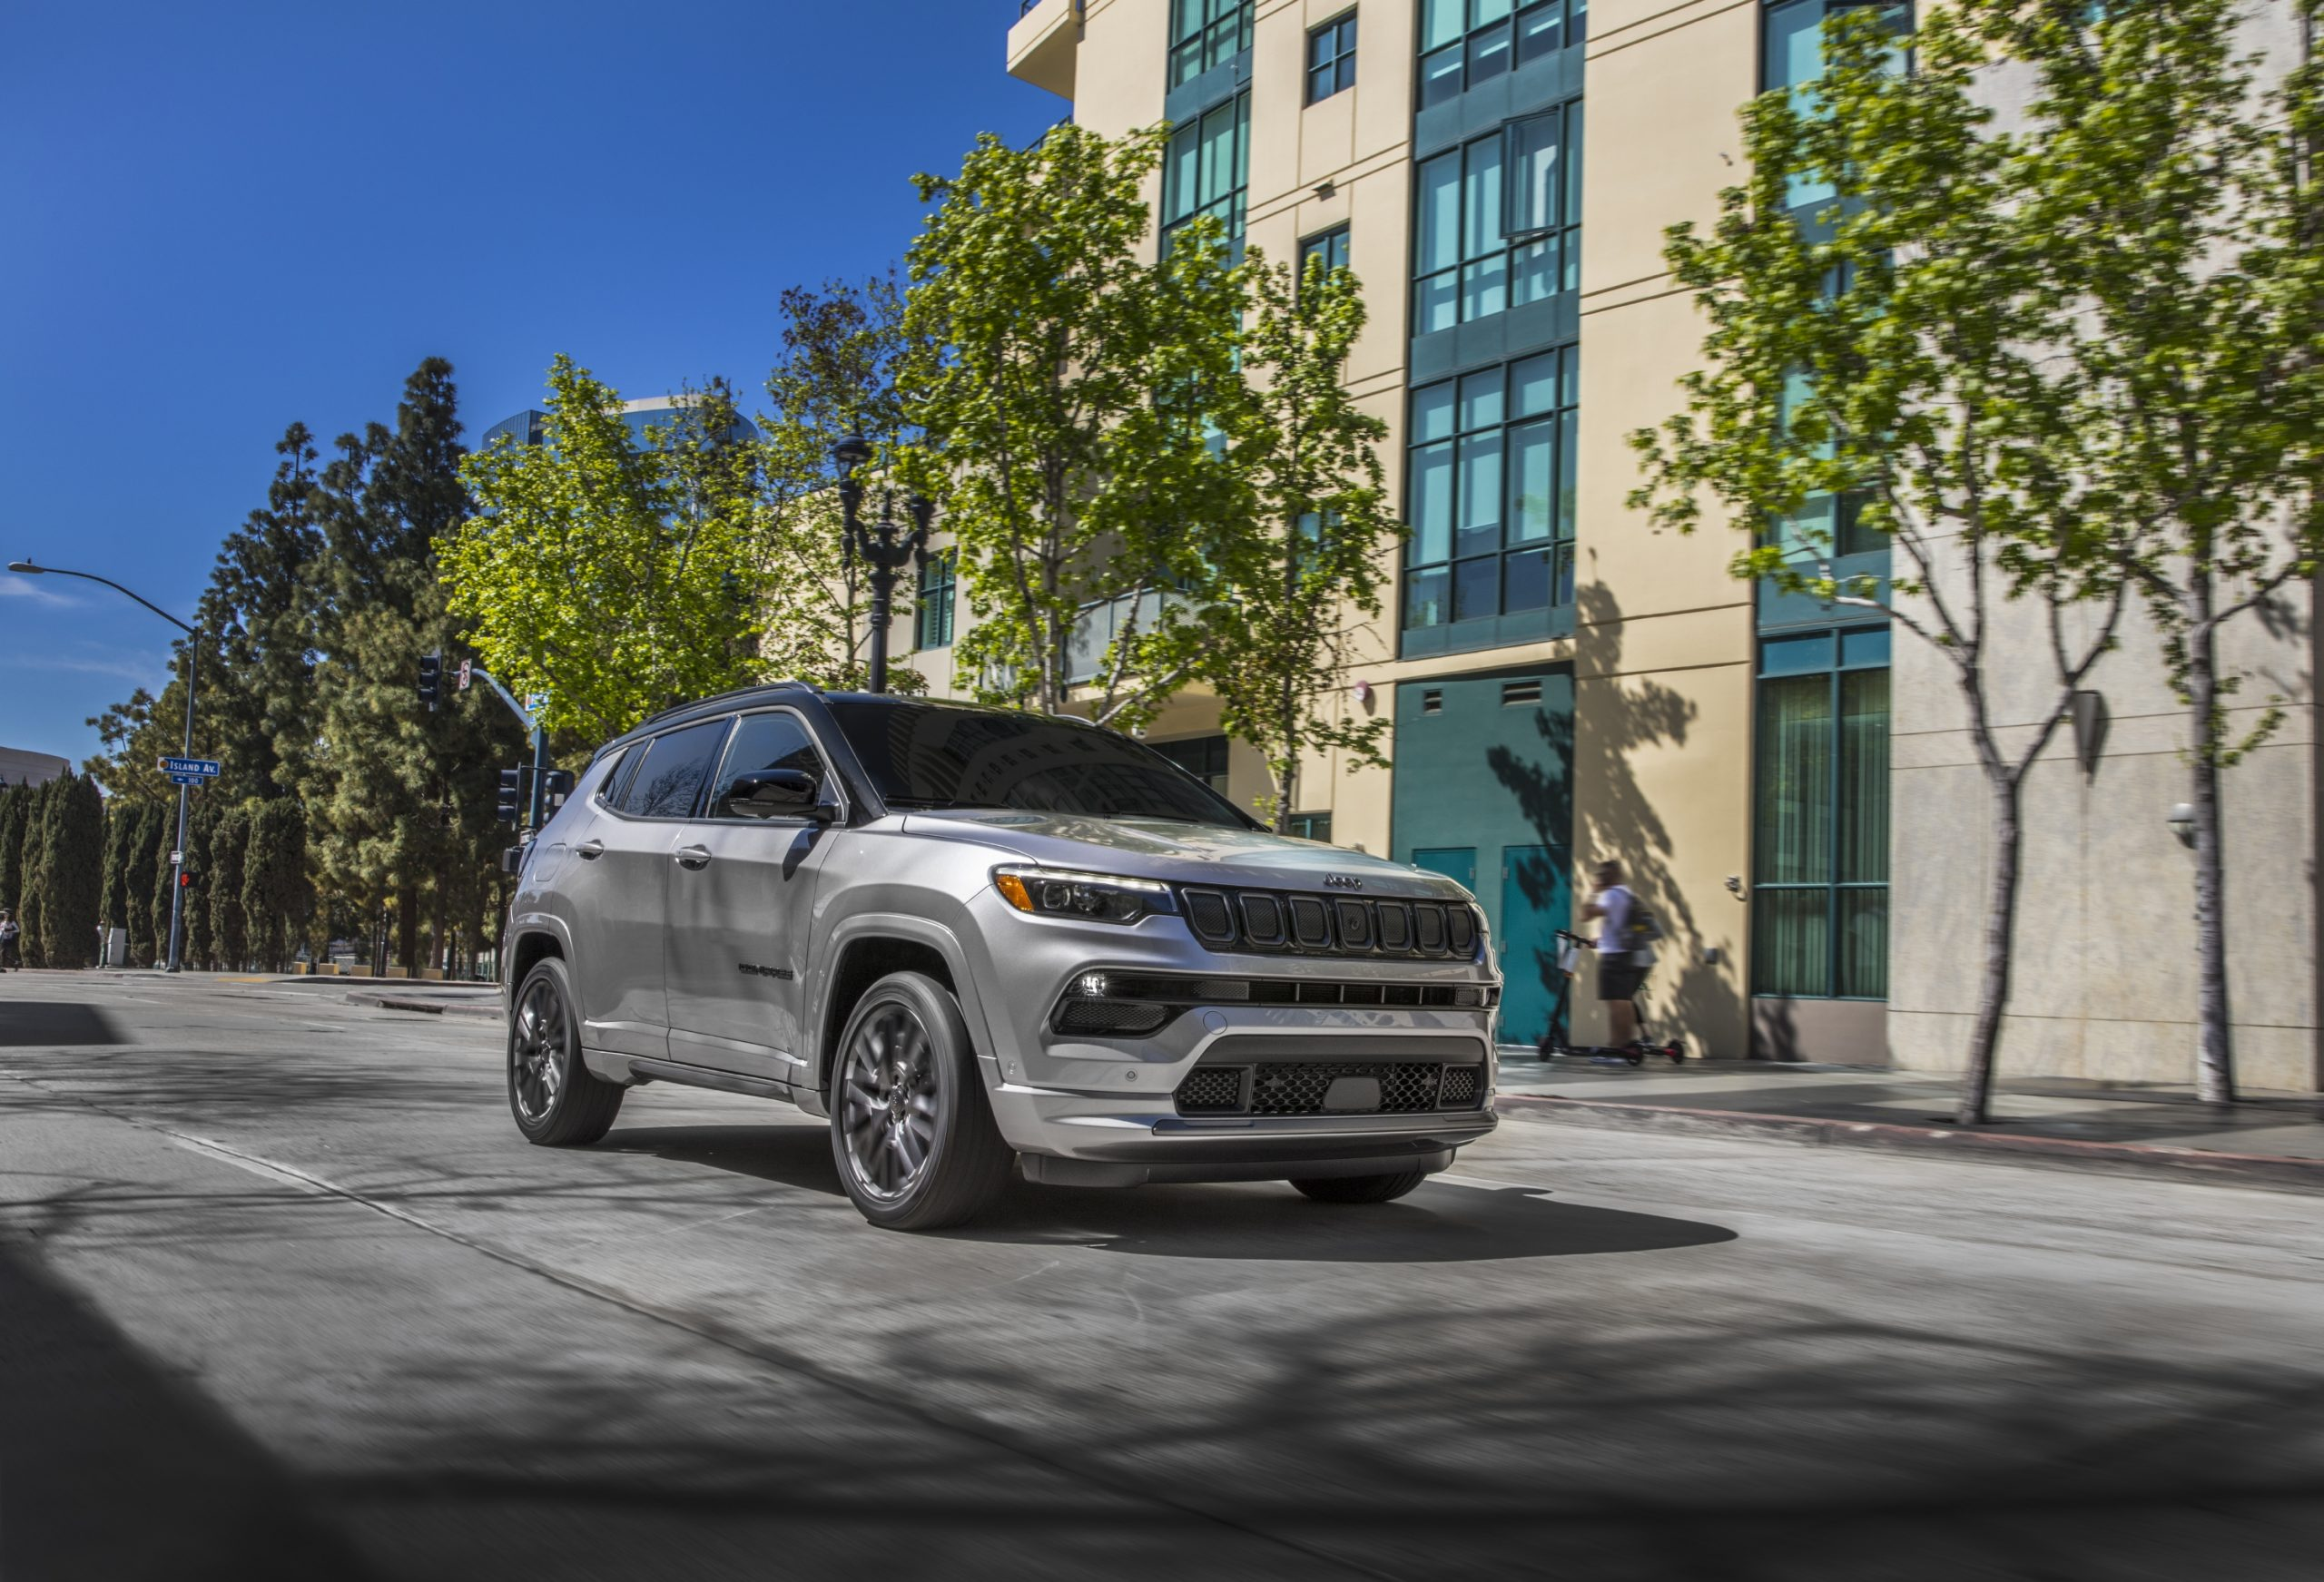 2022 Jeep® Compass Debuts at the 2021 Chicago Auto Show